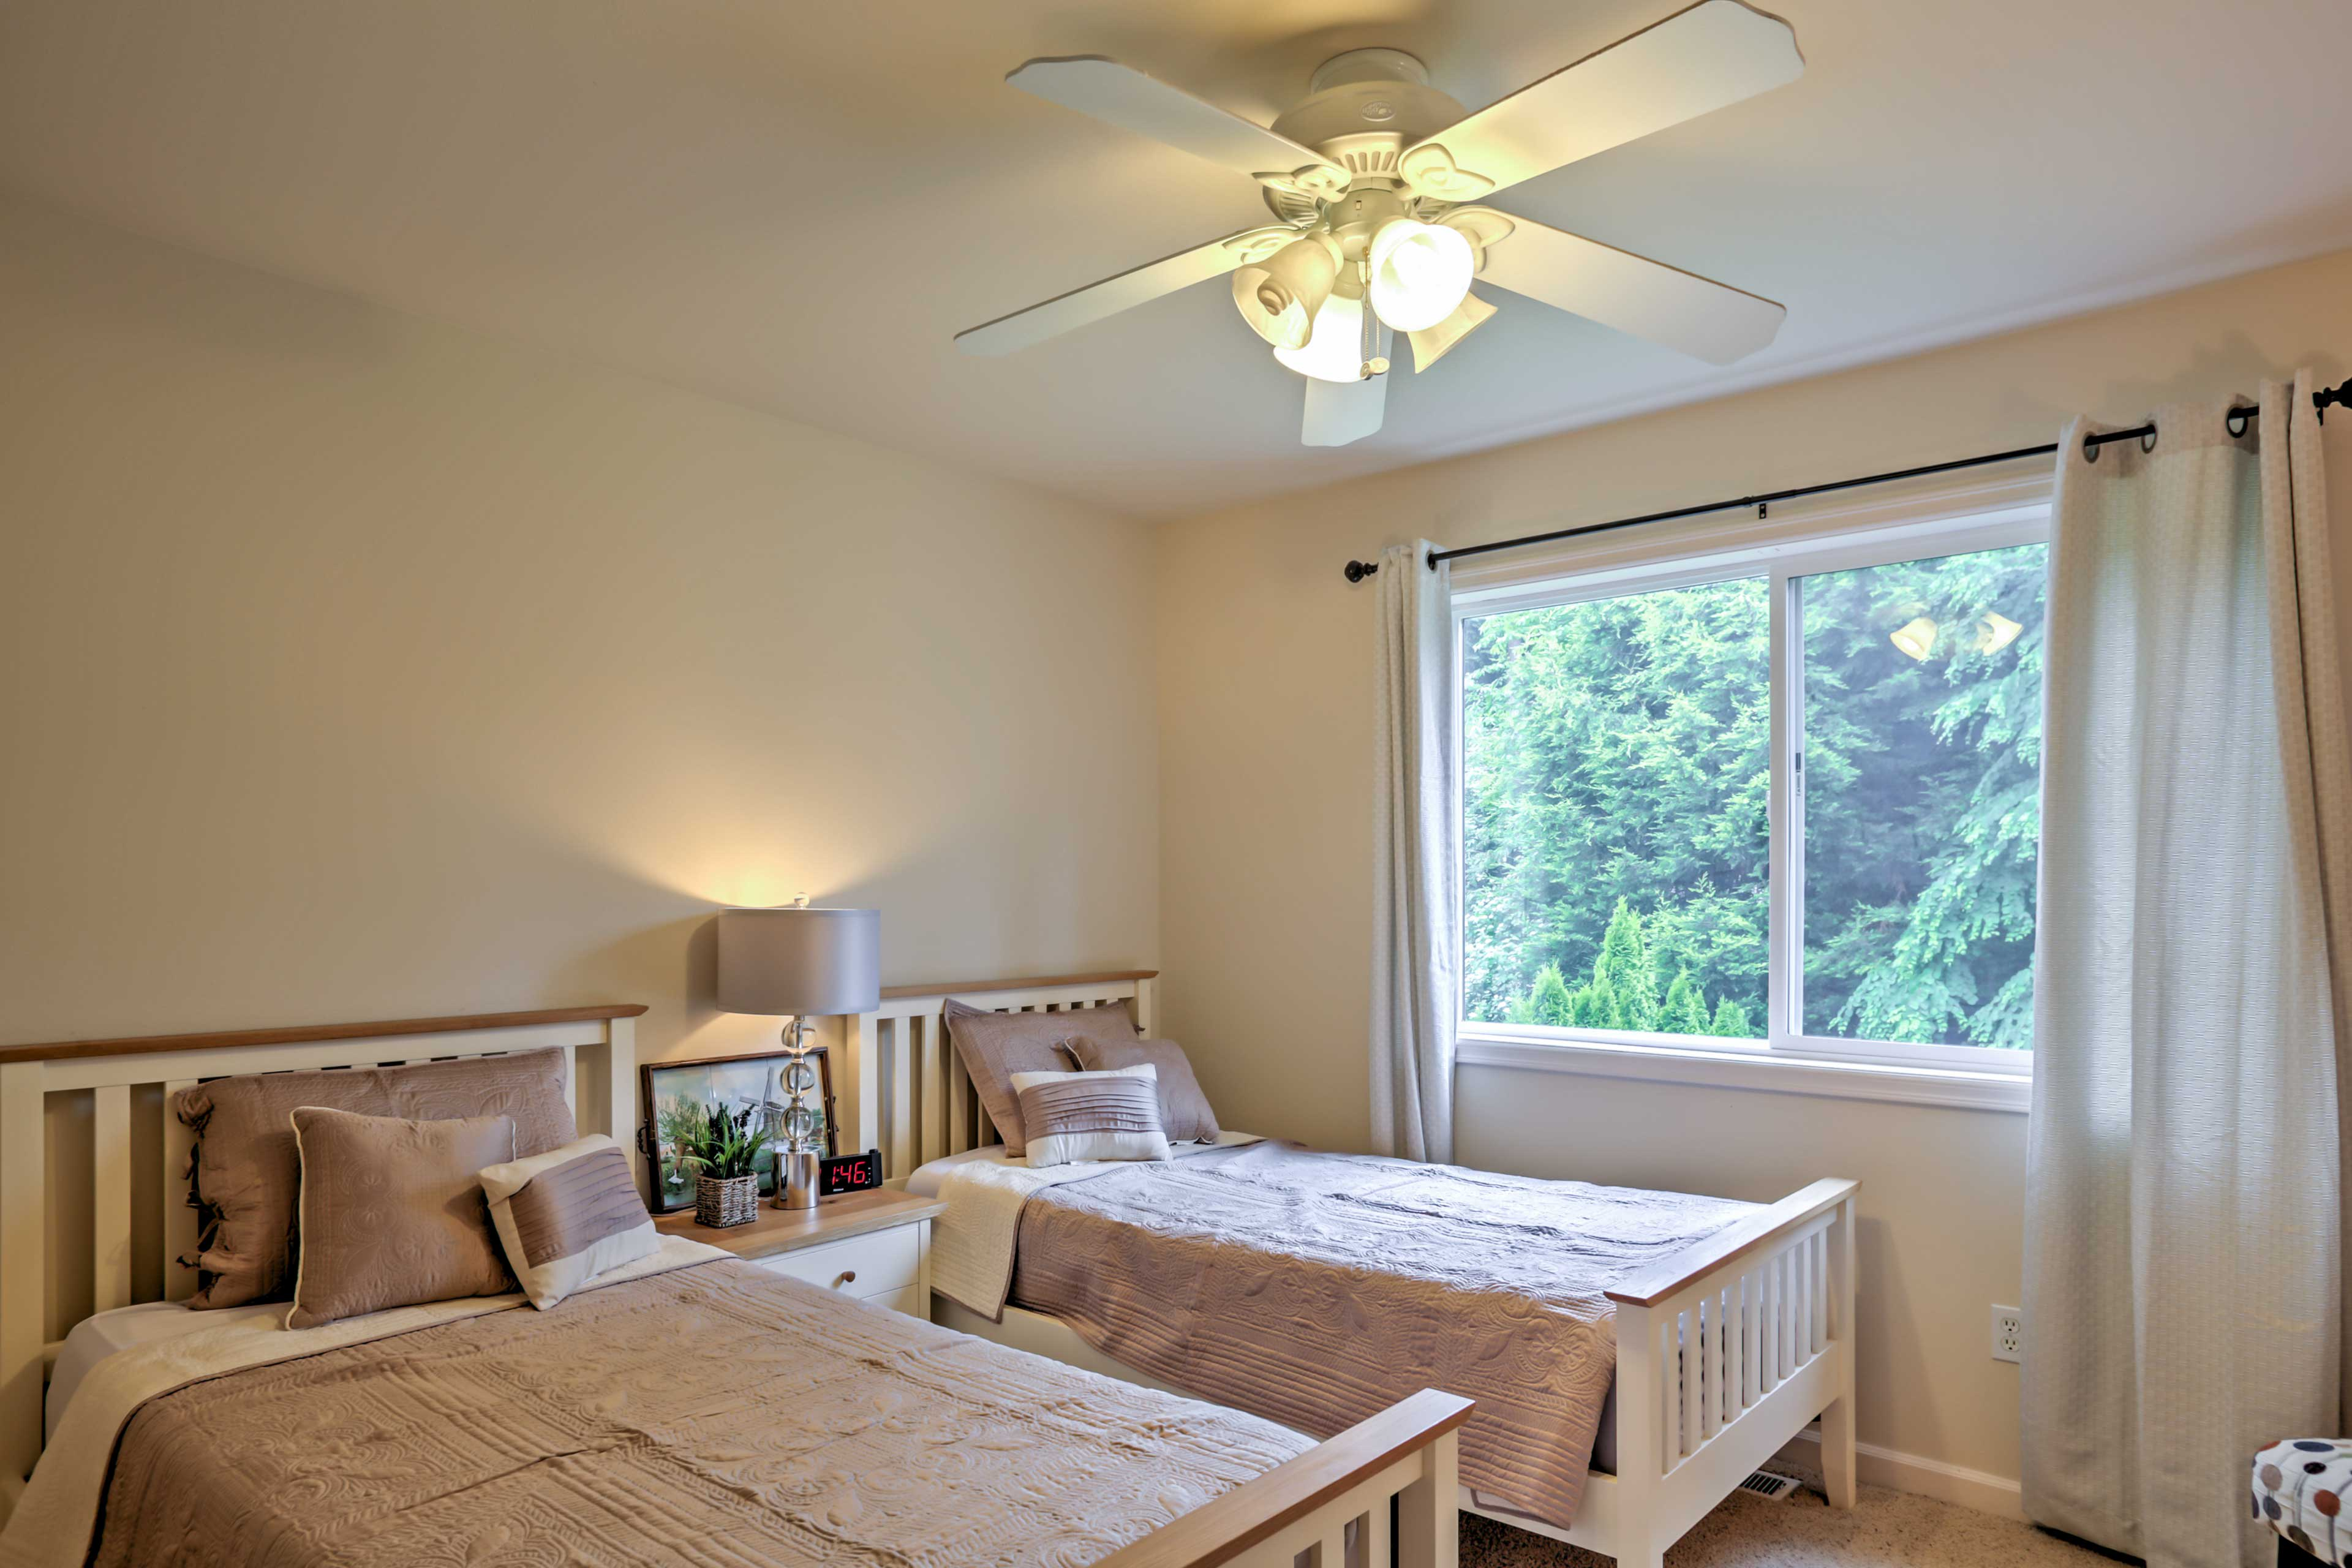 If you're traveling with kids, they'll loving sharing this room with 2 twin beds